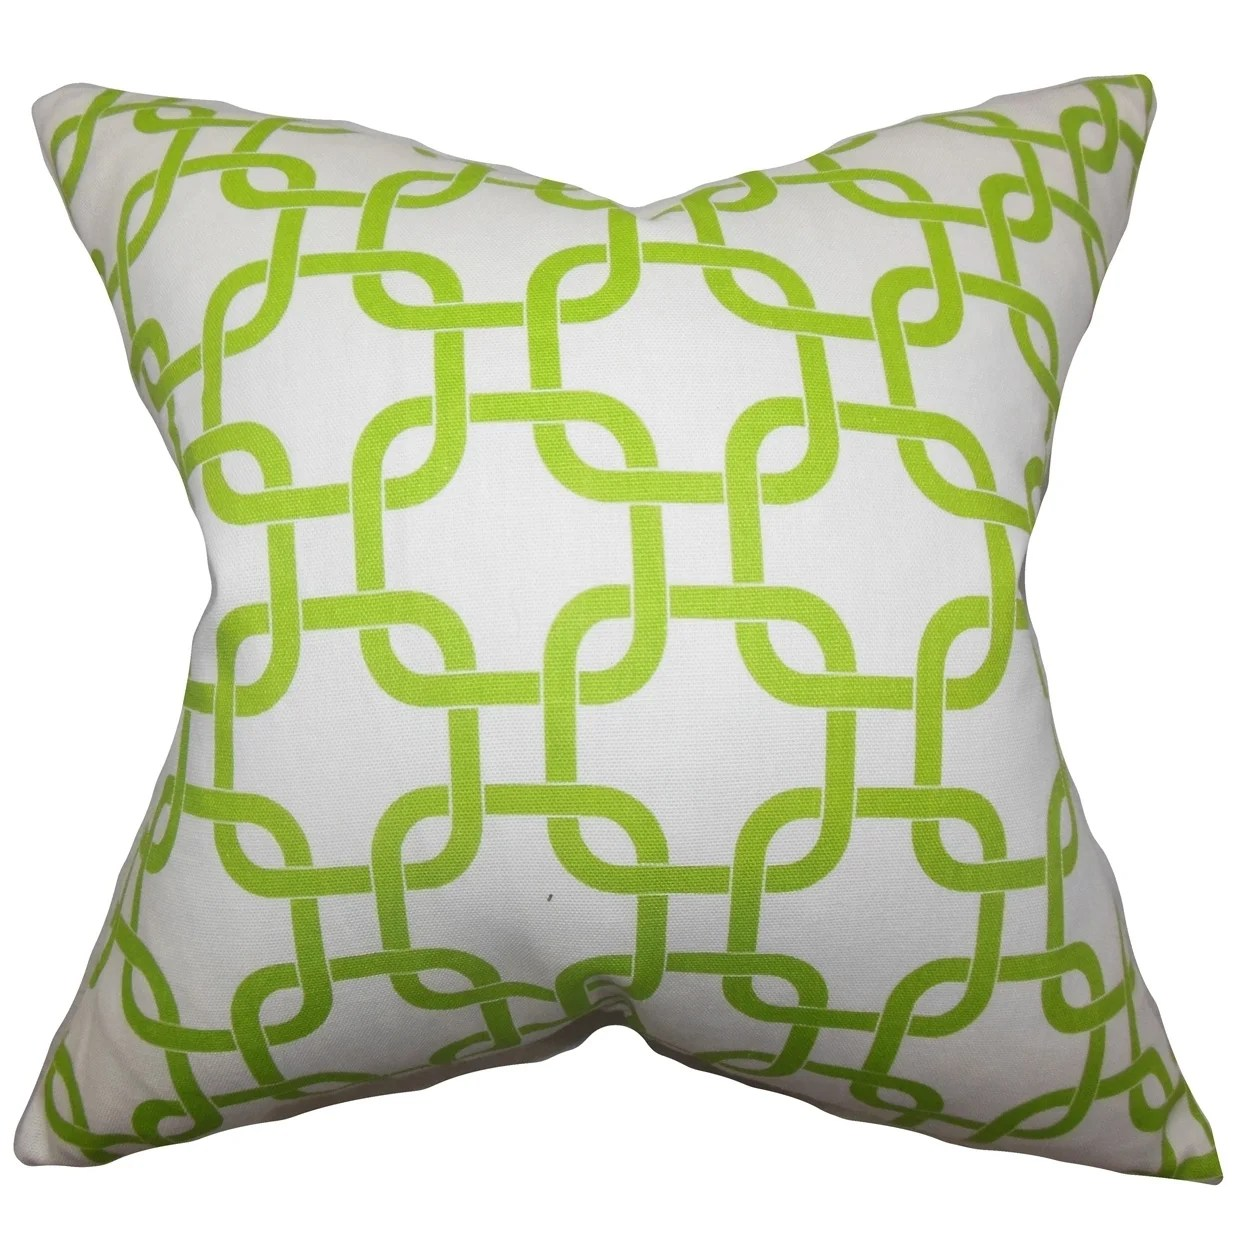 Qishn Geometric Green White Feather Filled Throw Pillow